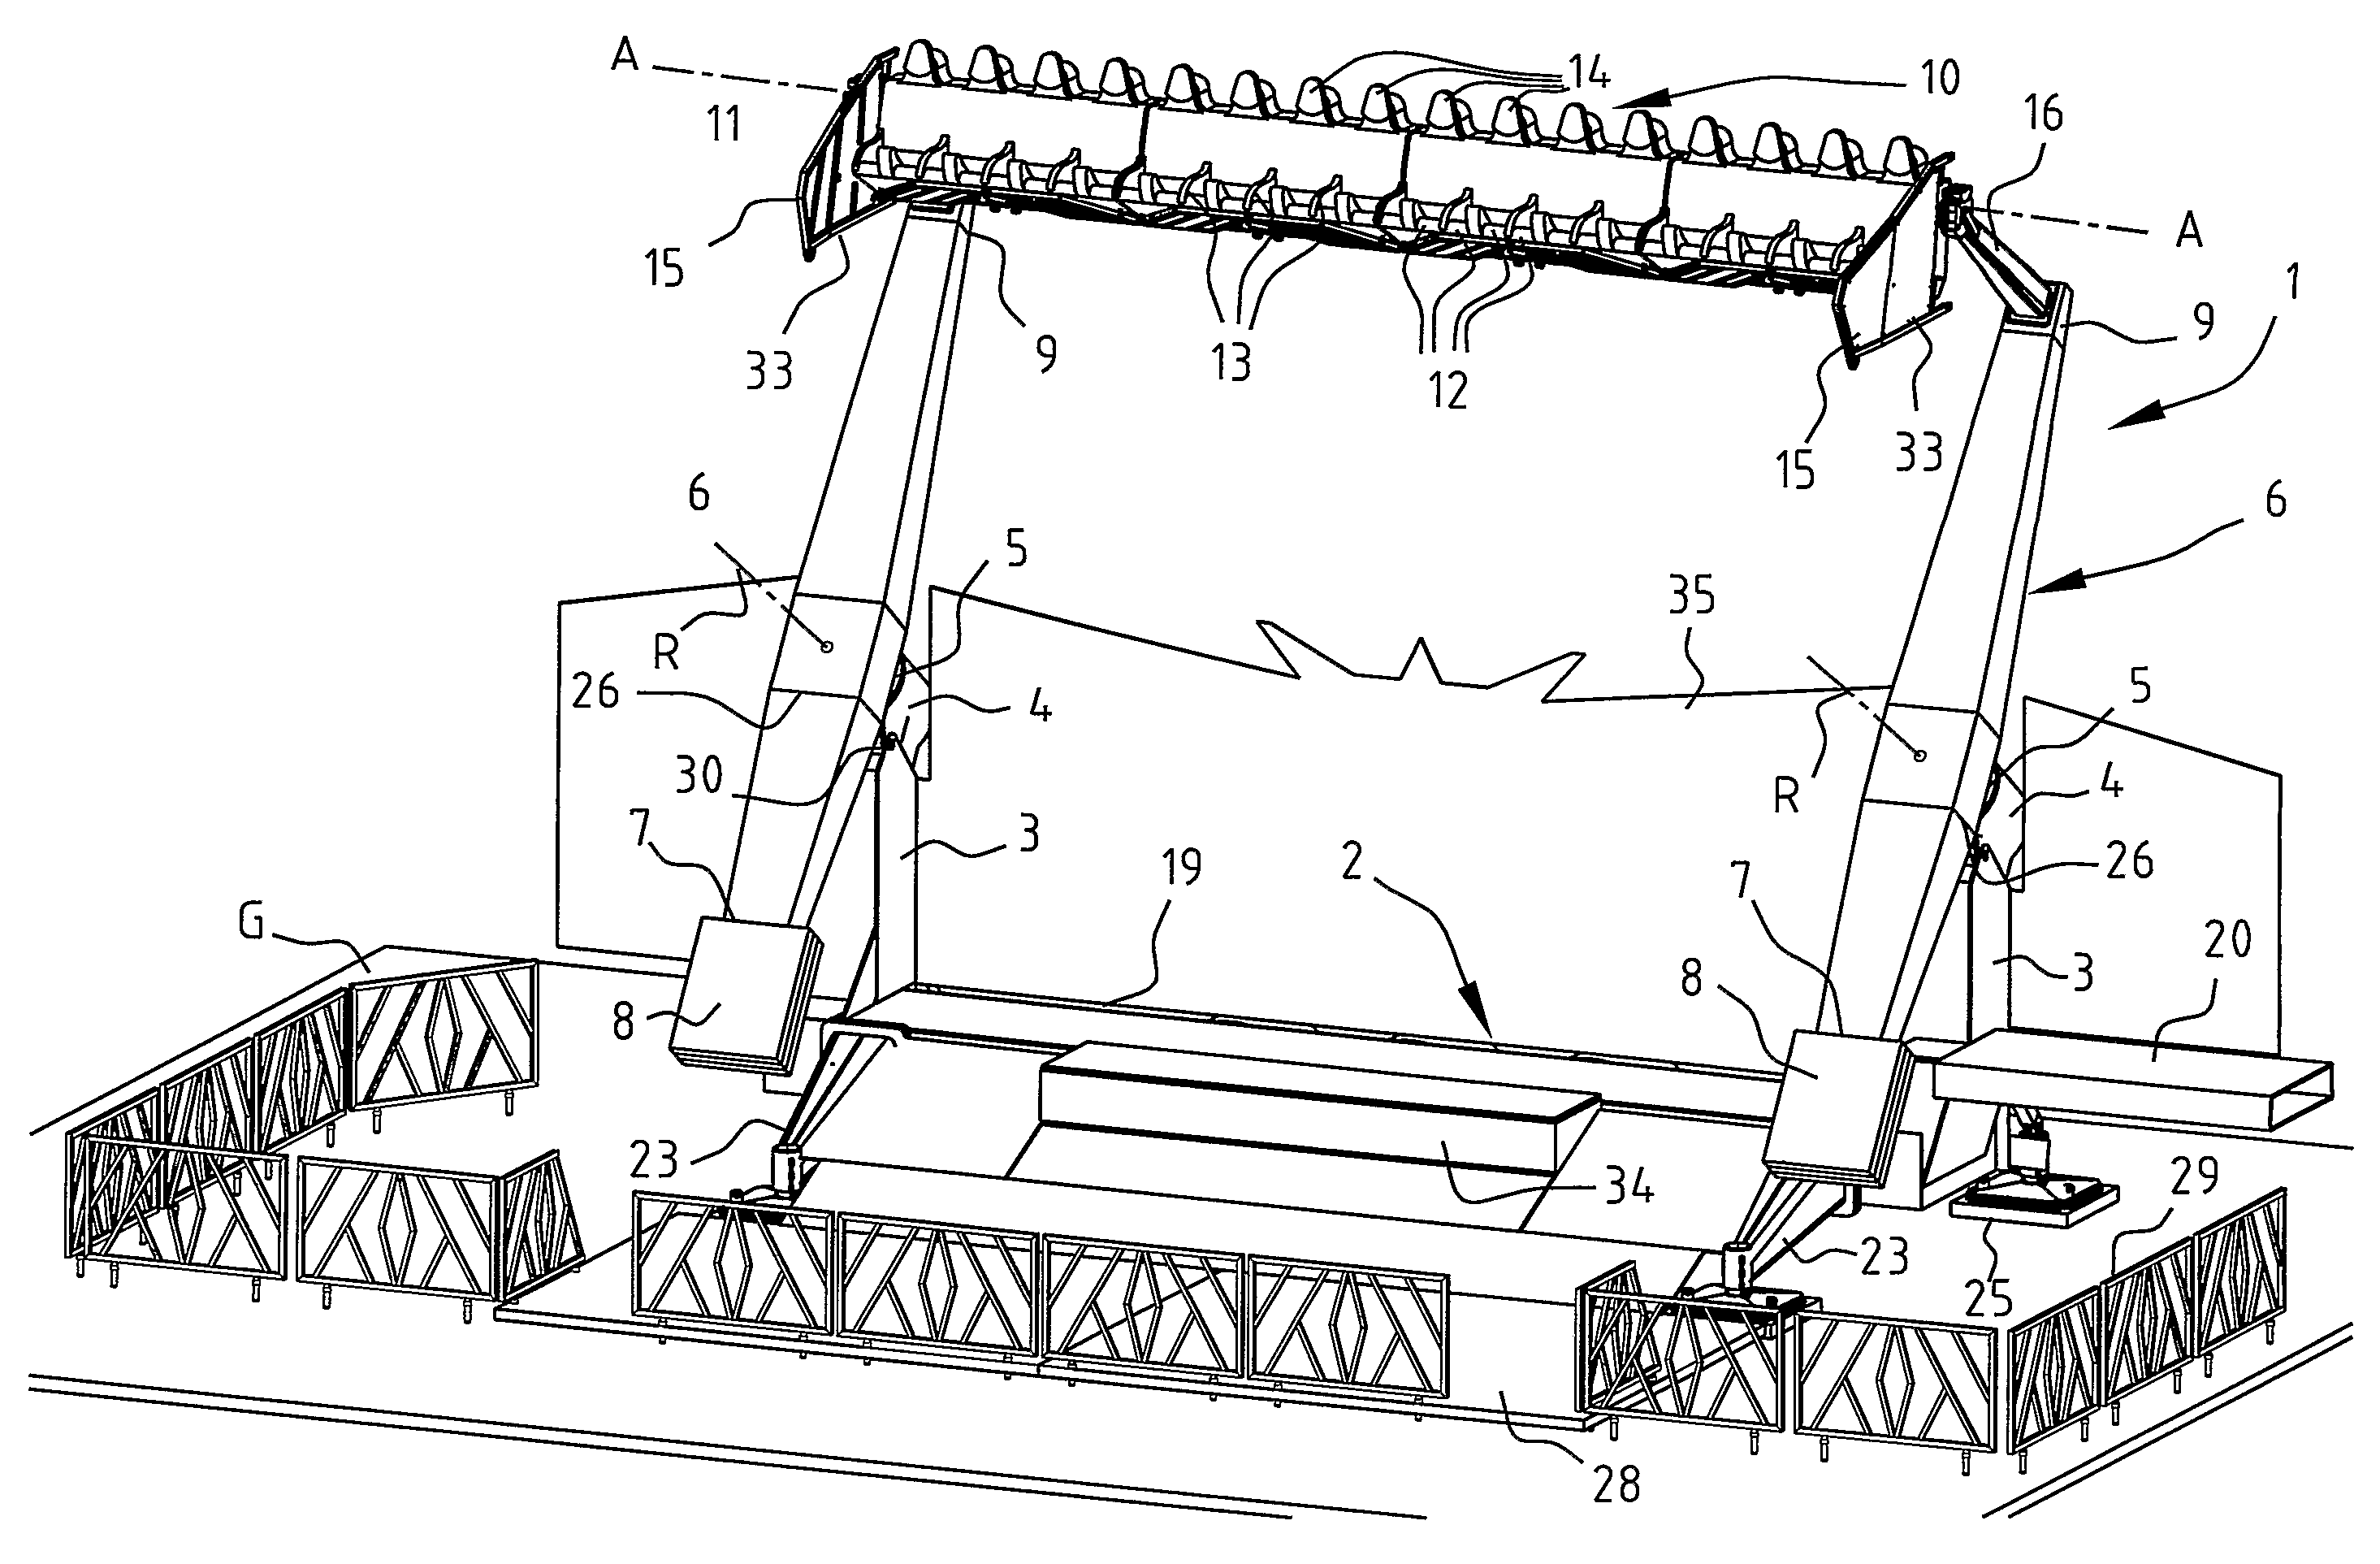 Patent Us20080026858 Fairground Attraction Having A People Carrier Gentex Mirror Wiring Diagram 12 Pin Drawing